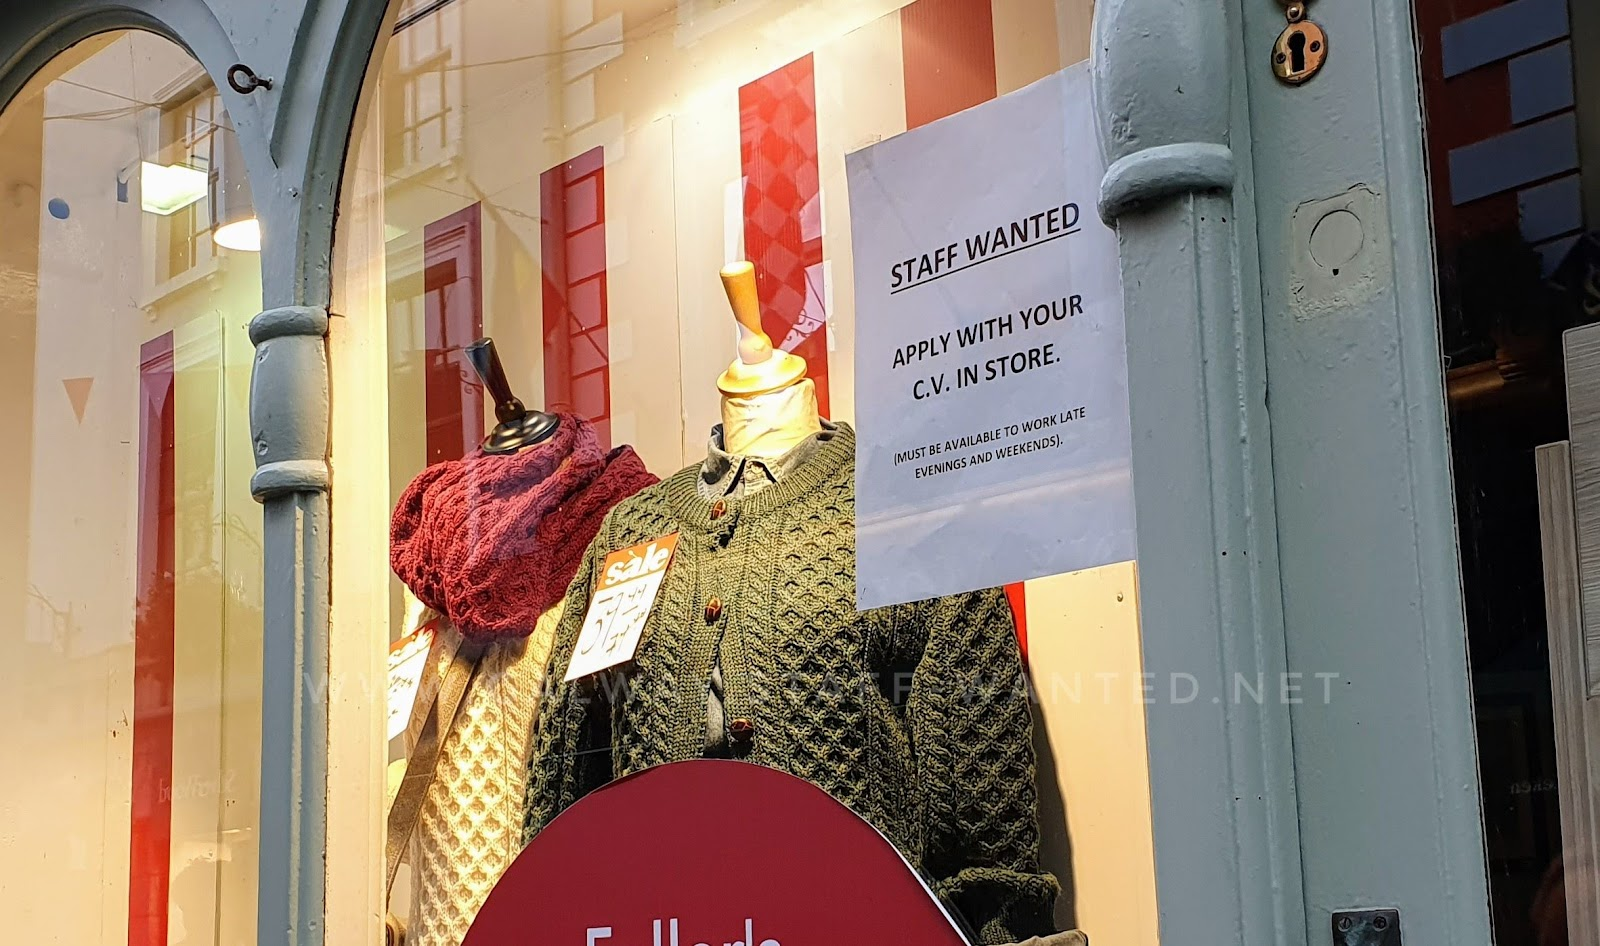 Shop window with job advertisement sign, and aran-knitwear sweaters in traditional cream, also green and red.